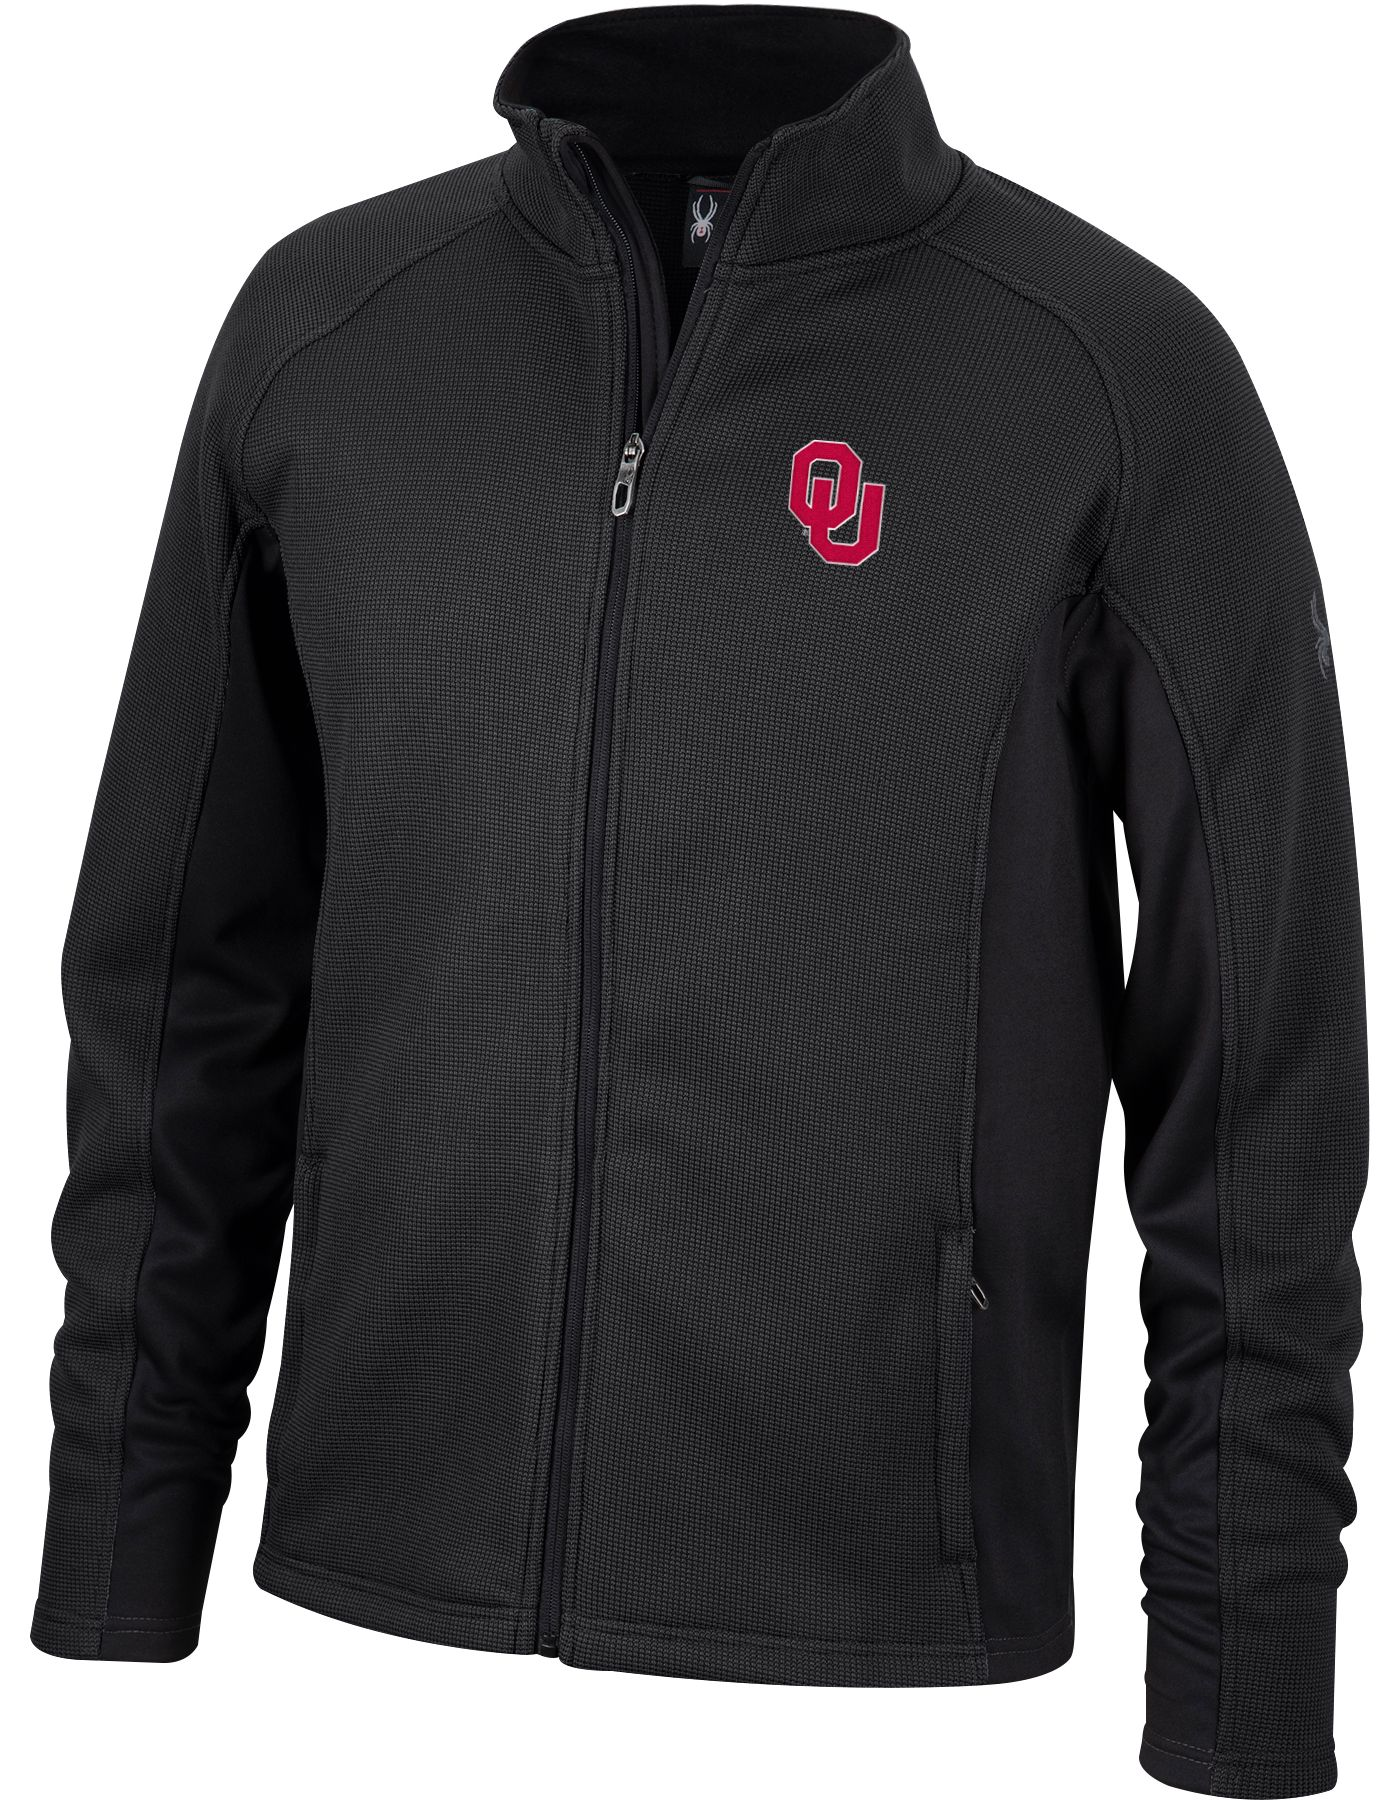 Spyder Men's Oklahoma Sooners Constant Full-Zip Fleece Black Jacket